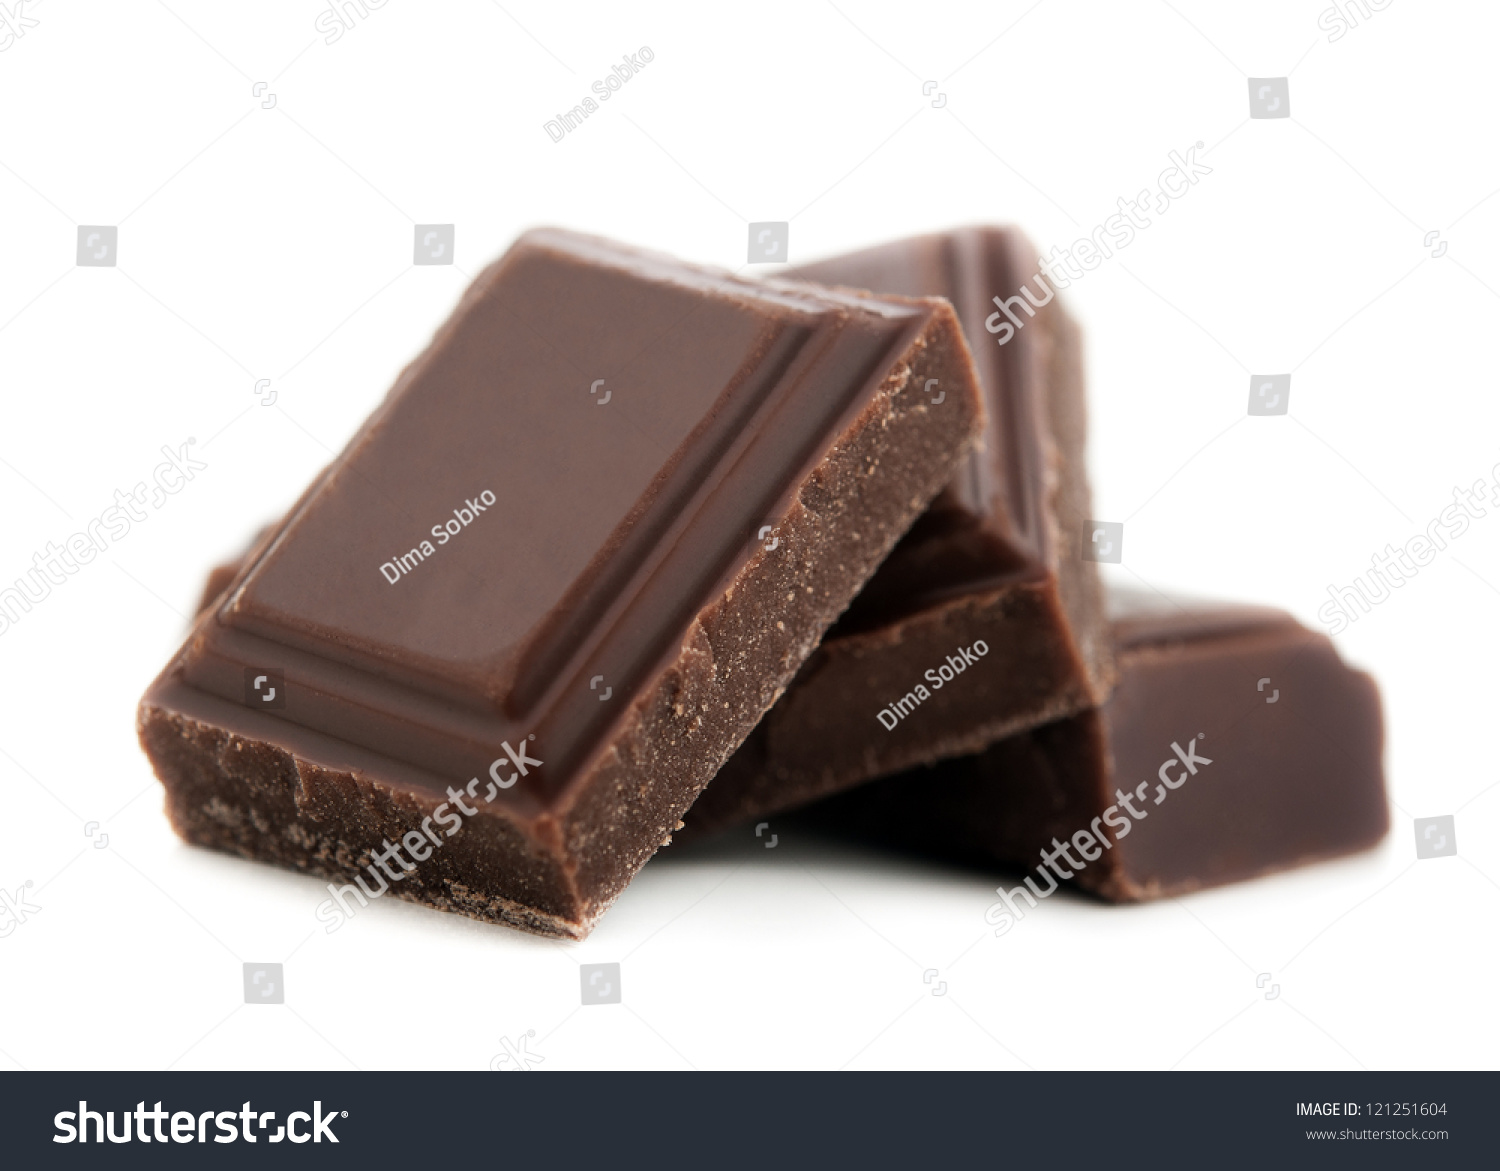 history of chocolate 2 essay Also explains the historical and literary context that influenced like water for chocolate  water for chocolate magical realism essay  history, the mexican.